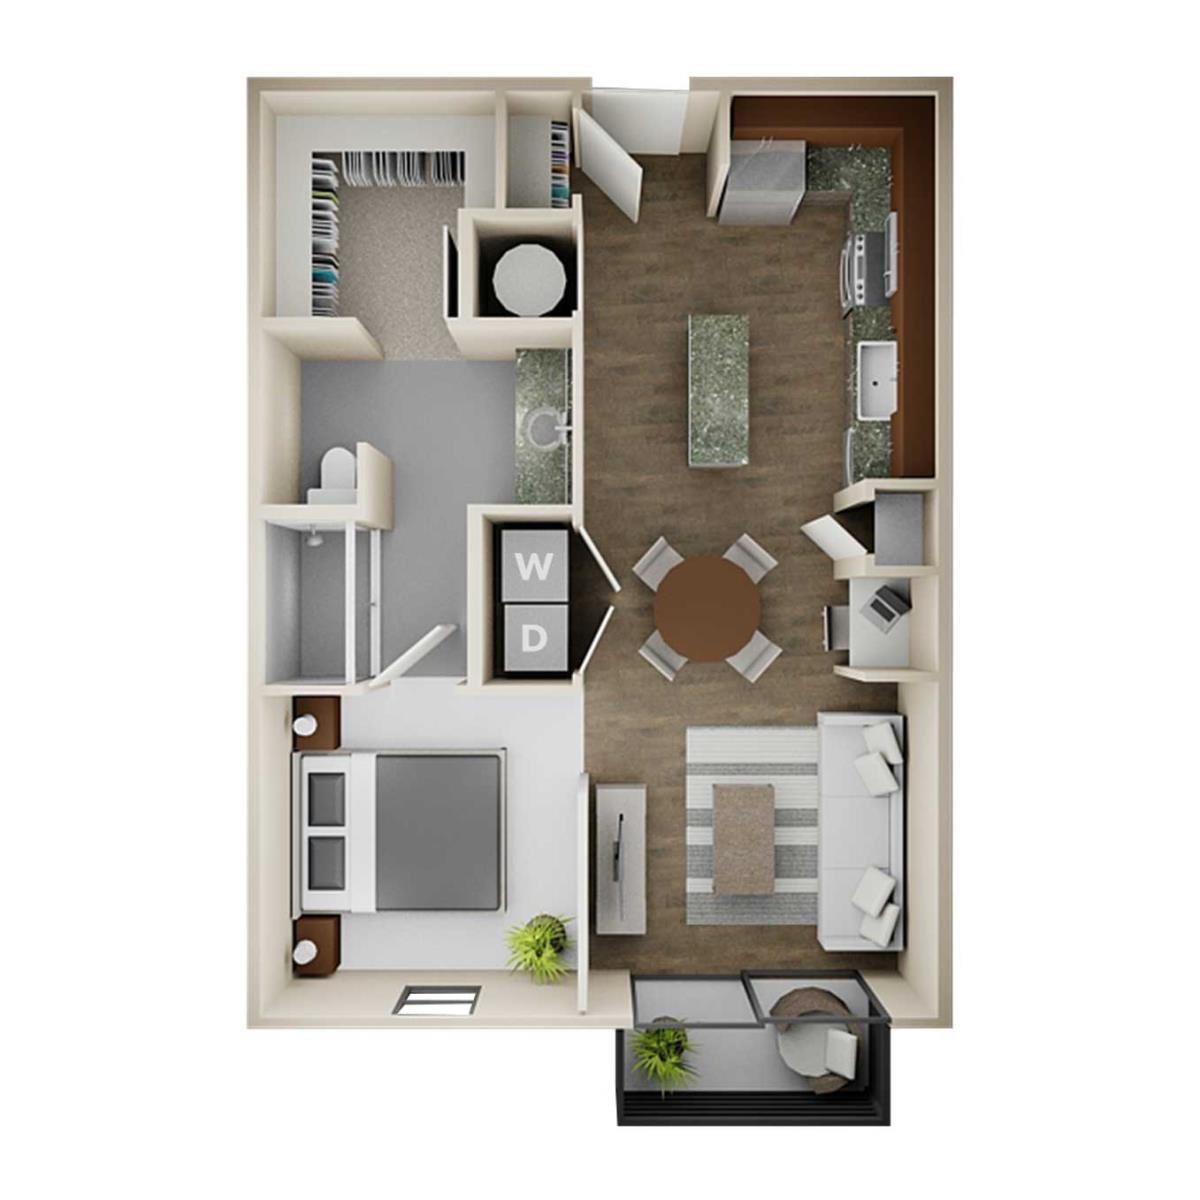 655 sq. ft. E1 floor plan